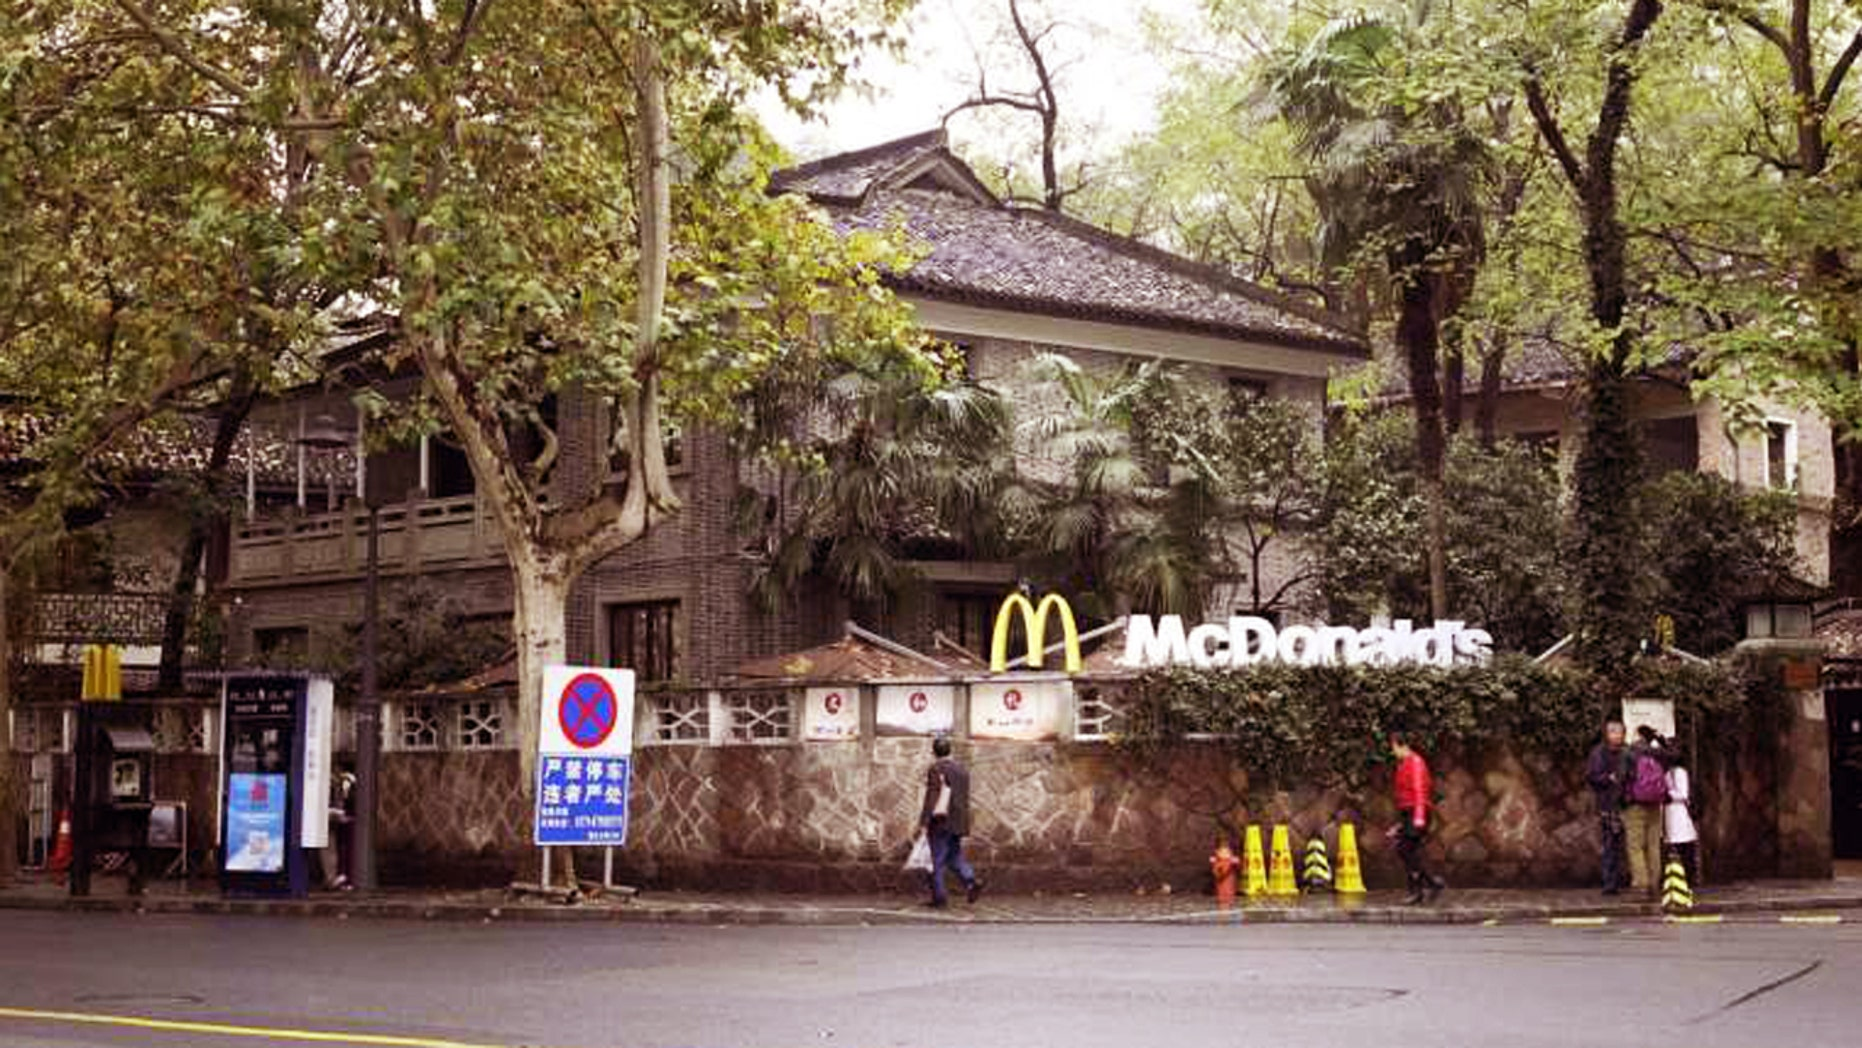 Some locals are furious over the historic location of this new McDonald's.